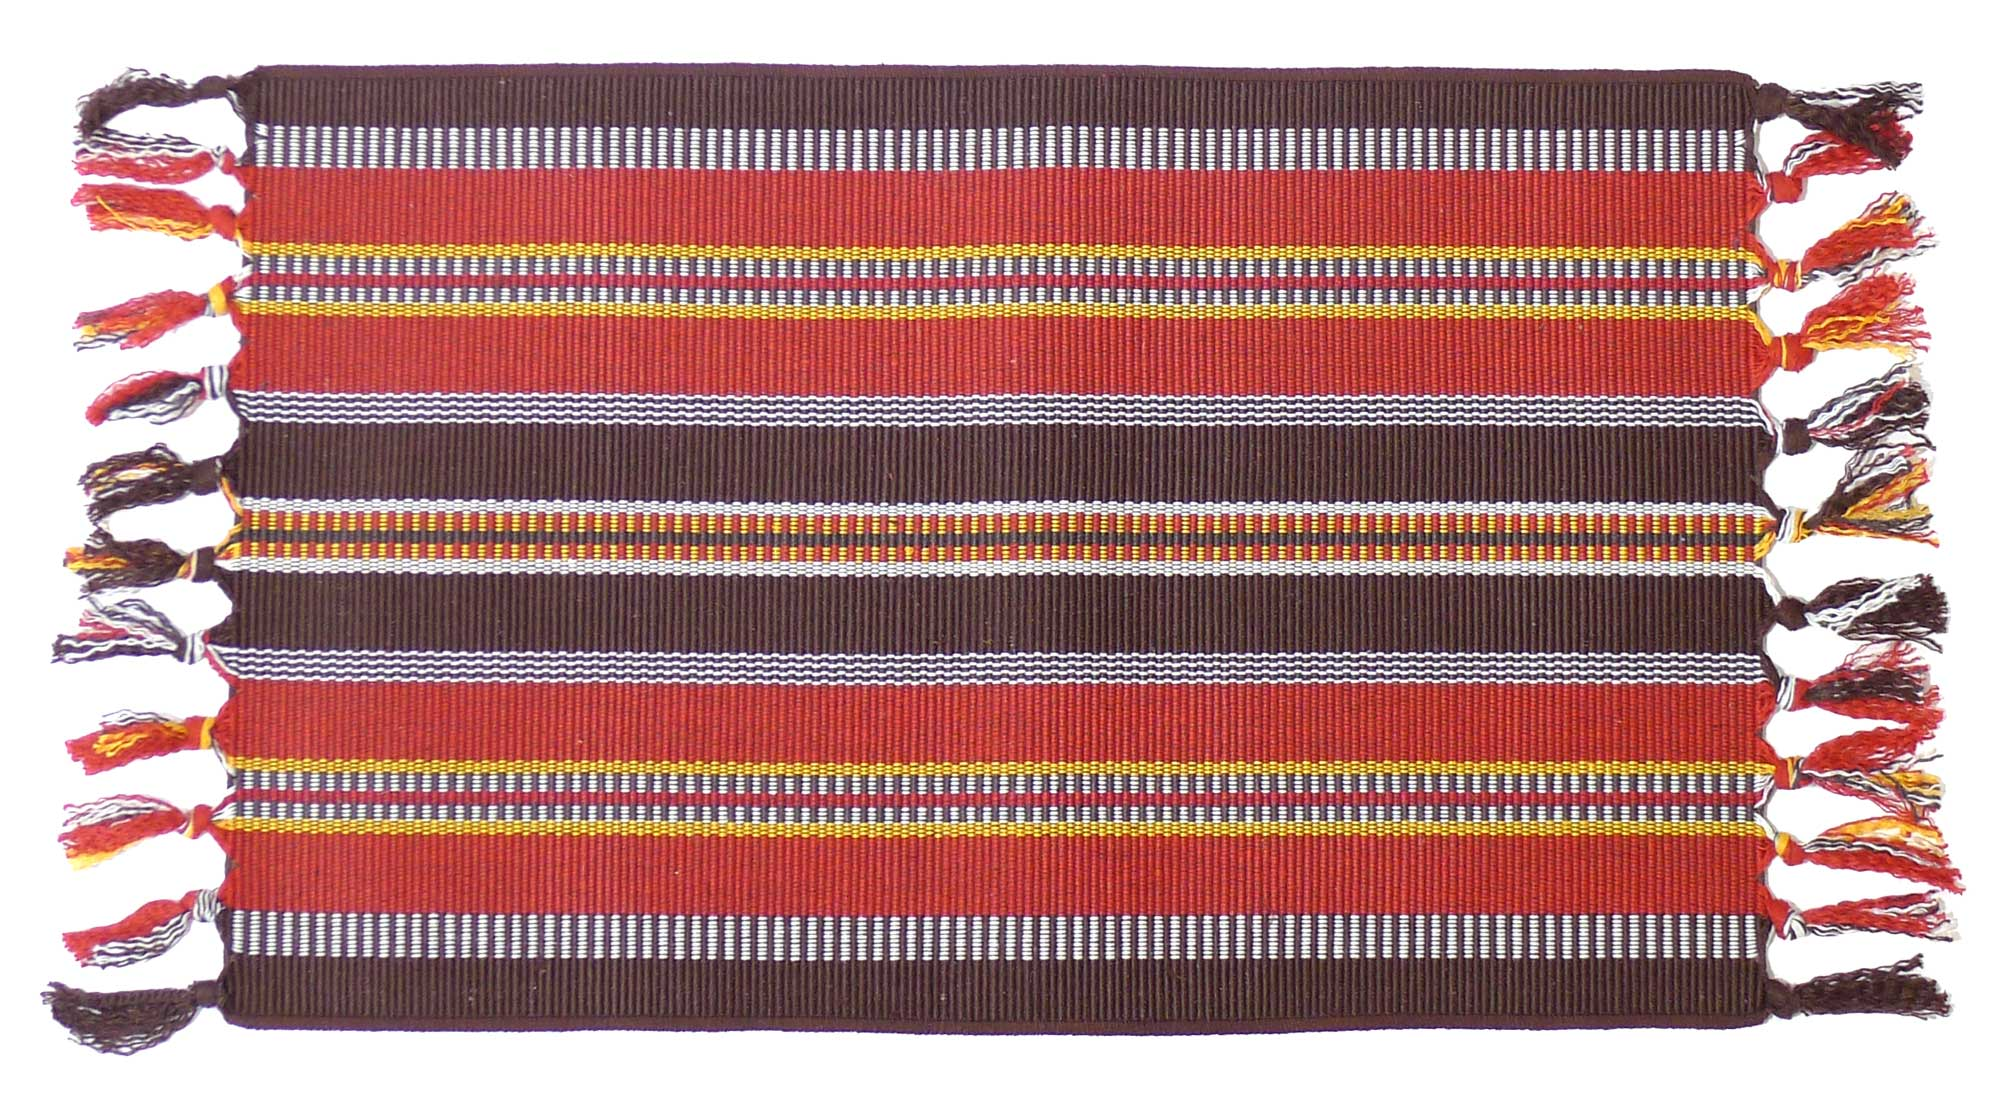 Image of Squish Woven Cotton Placemat - Red and Brown - Pack of 4